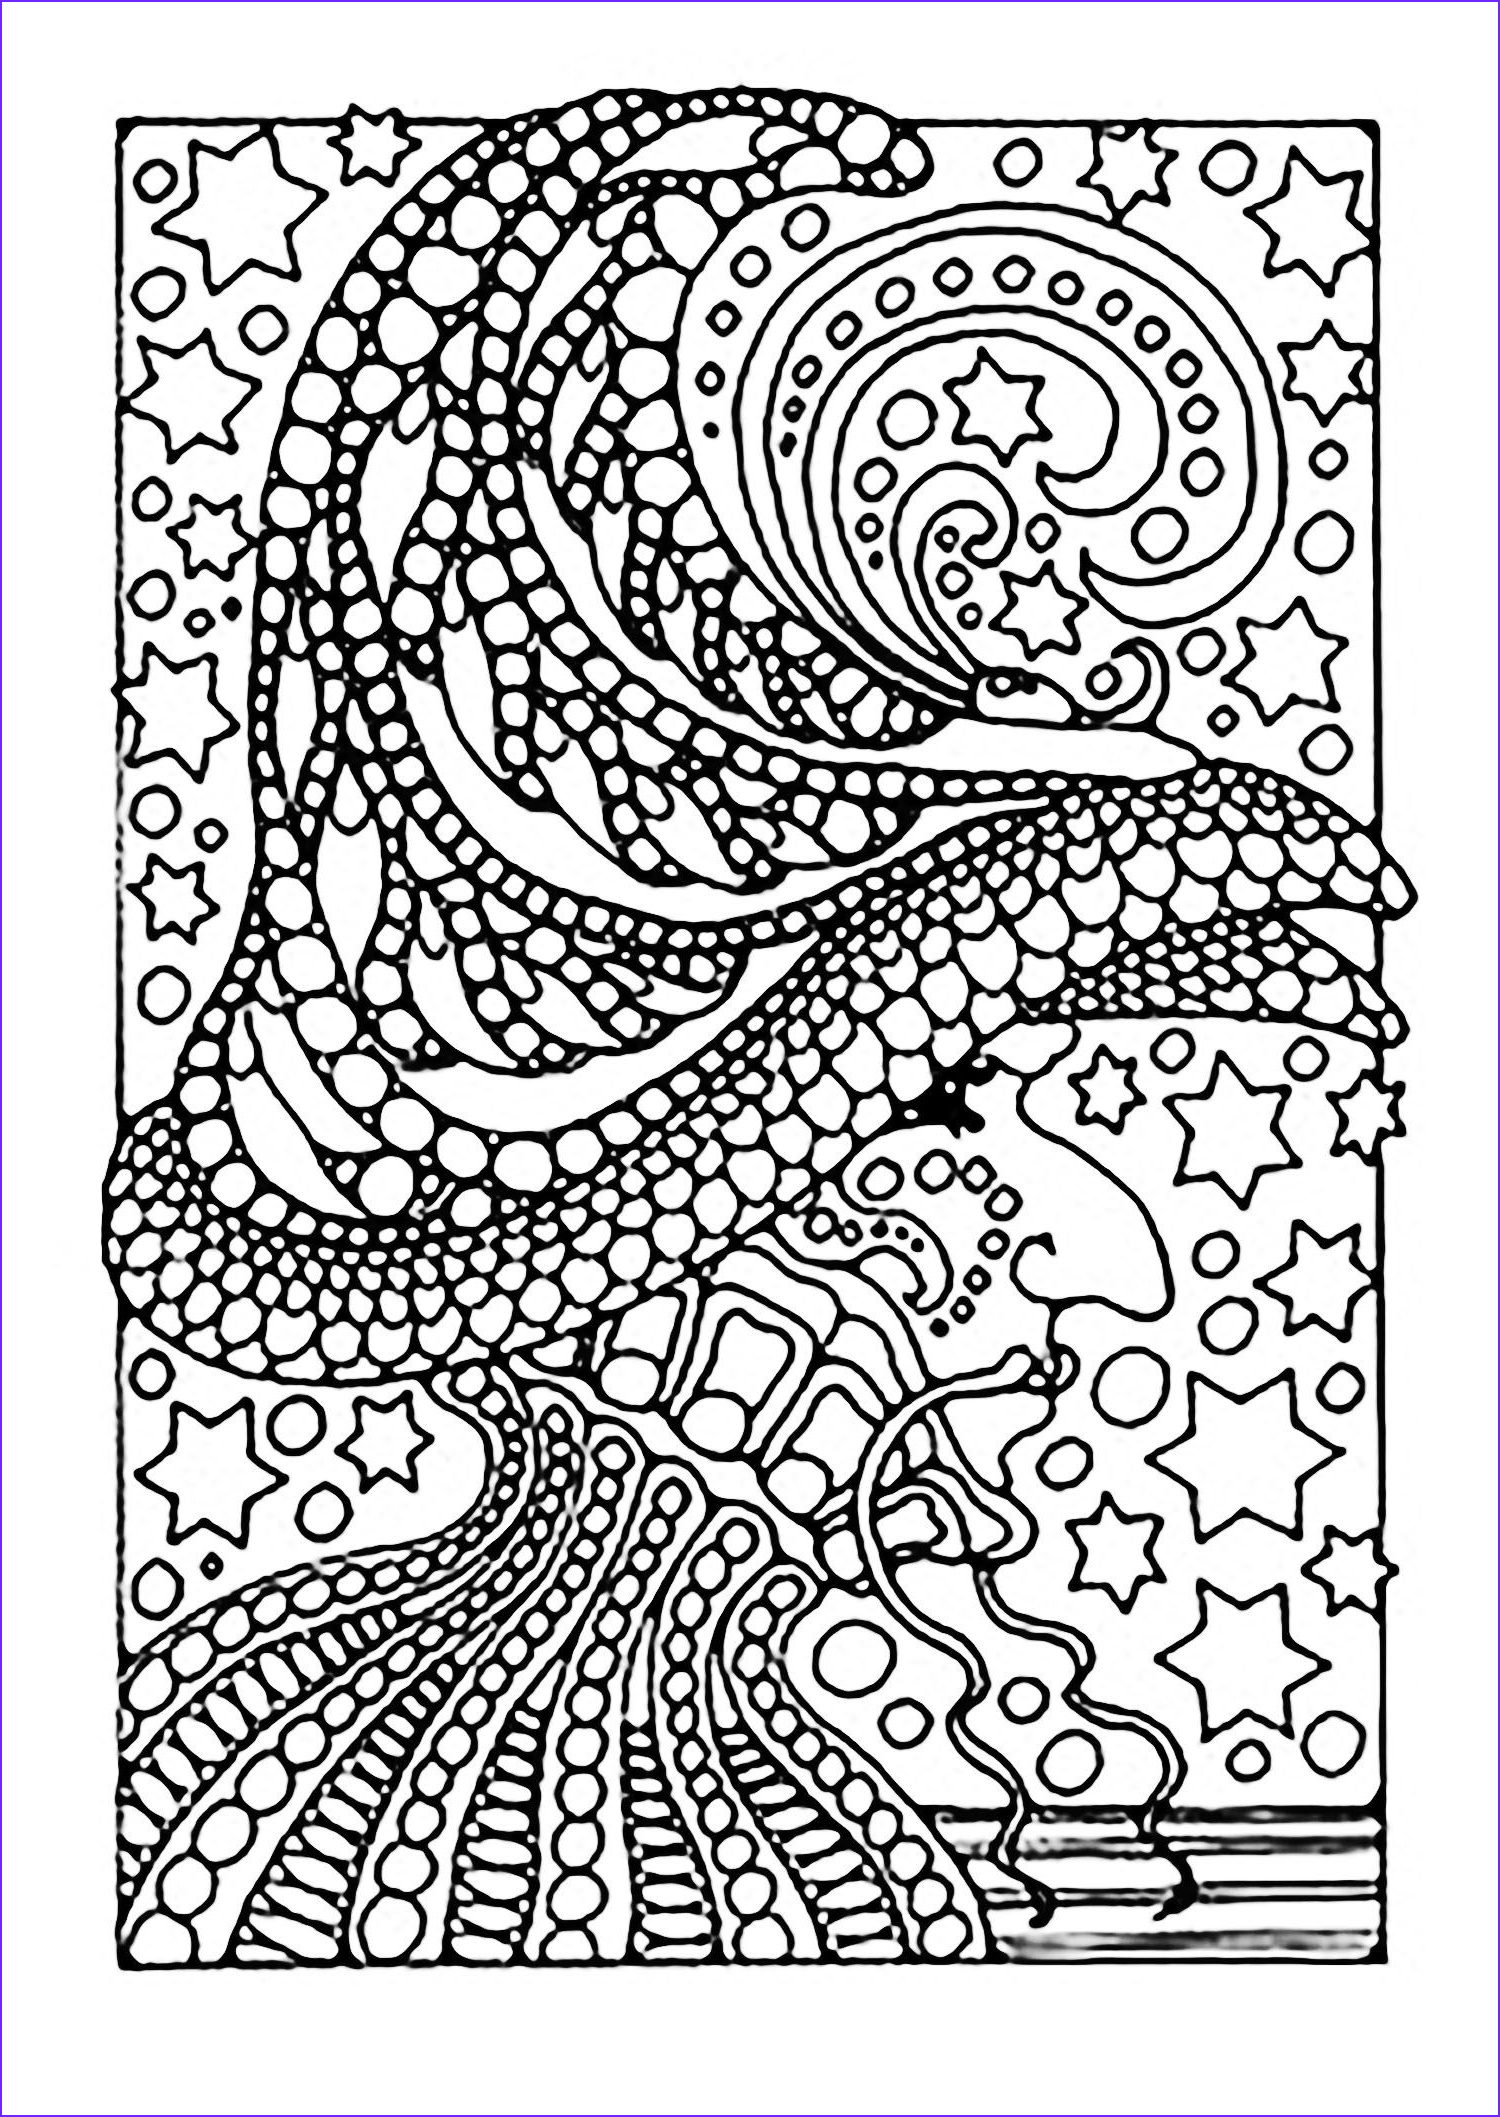 Free Printable Halloween Coloring Pages Adults Cool Photos A Scary Witch Color All these Stars From the Gallery